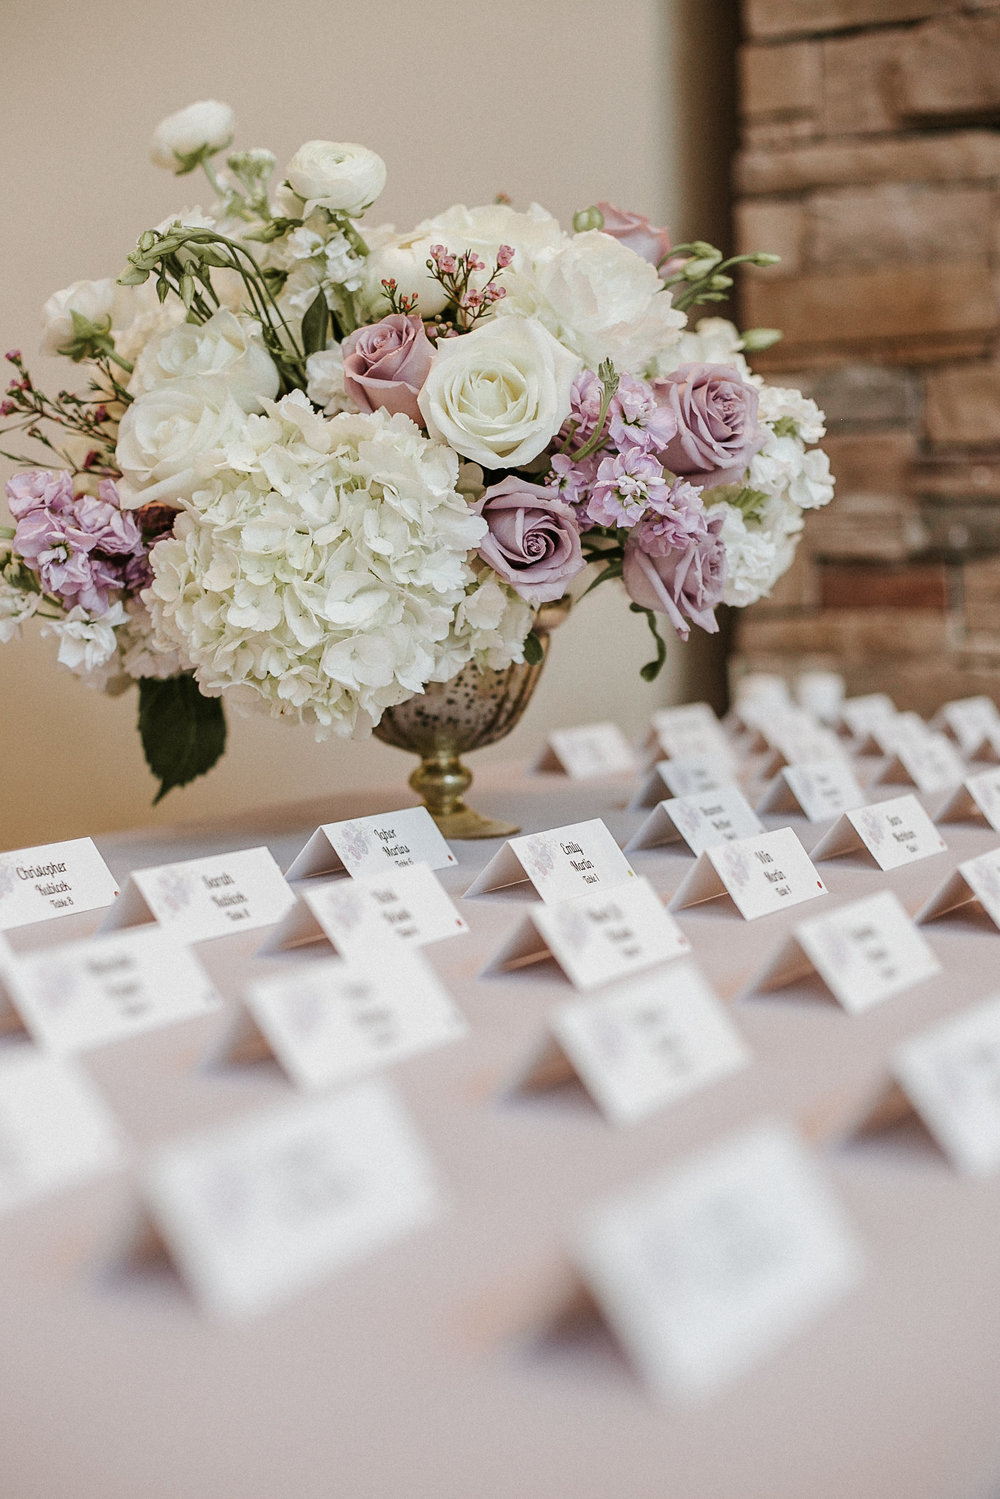 Seating cards at wedding